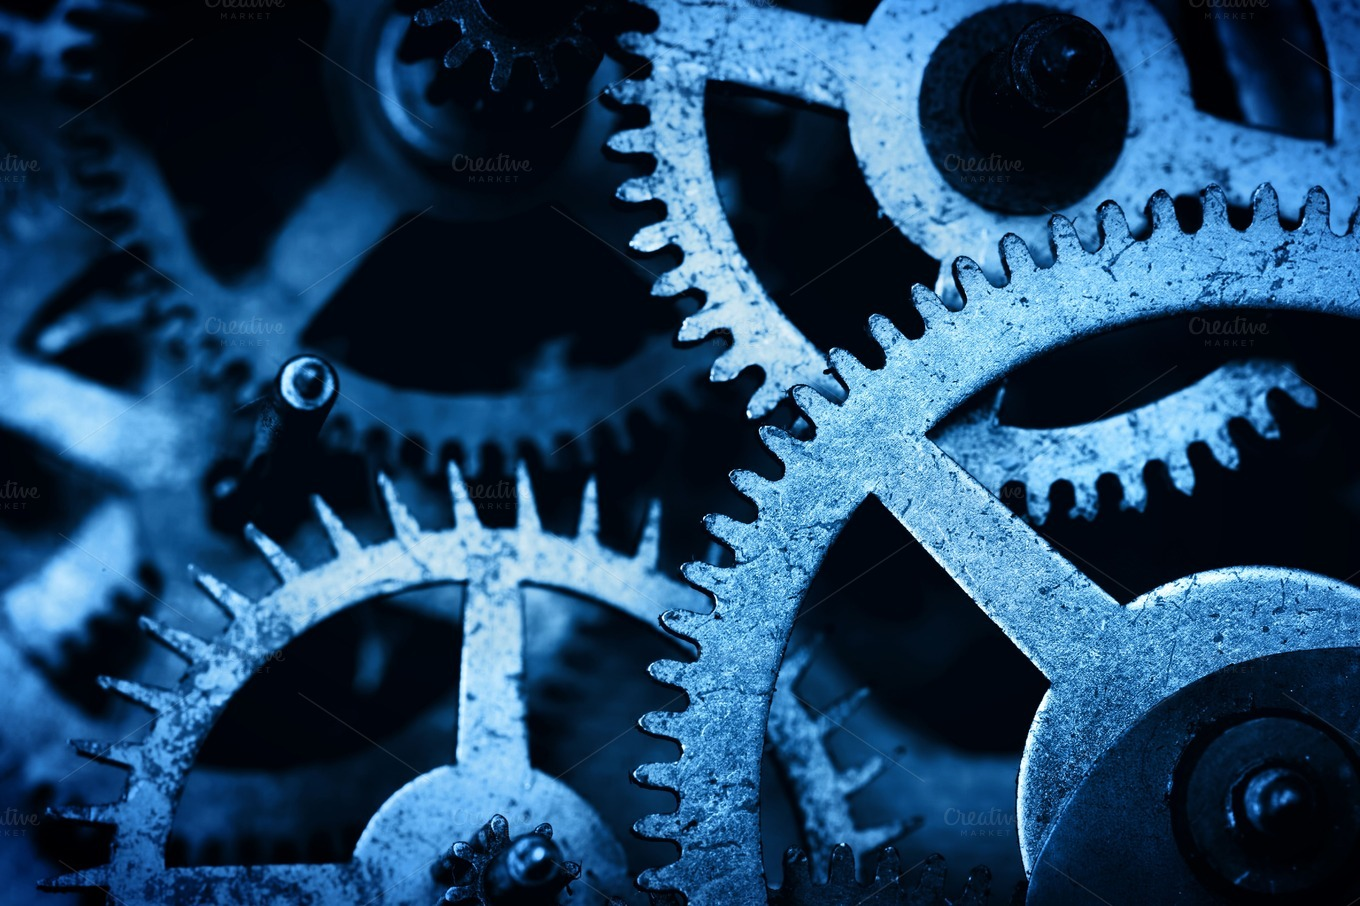 Gear, cog wheels background ~ Technology Photos on ...